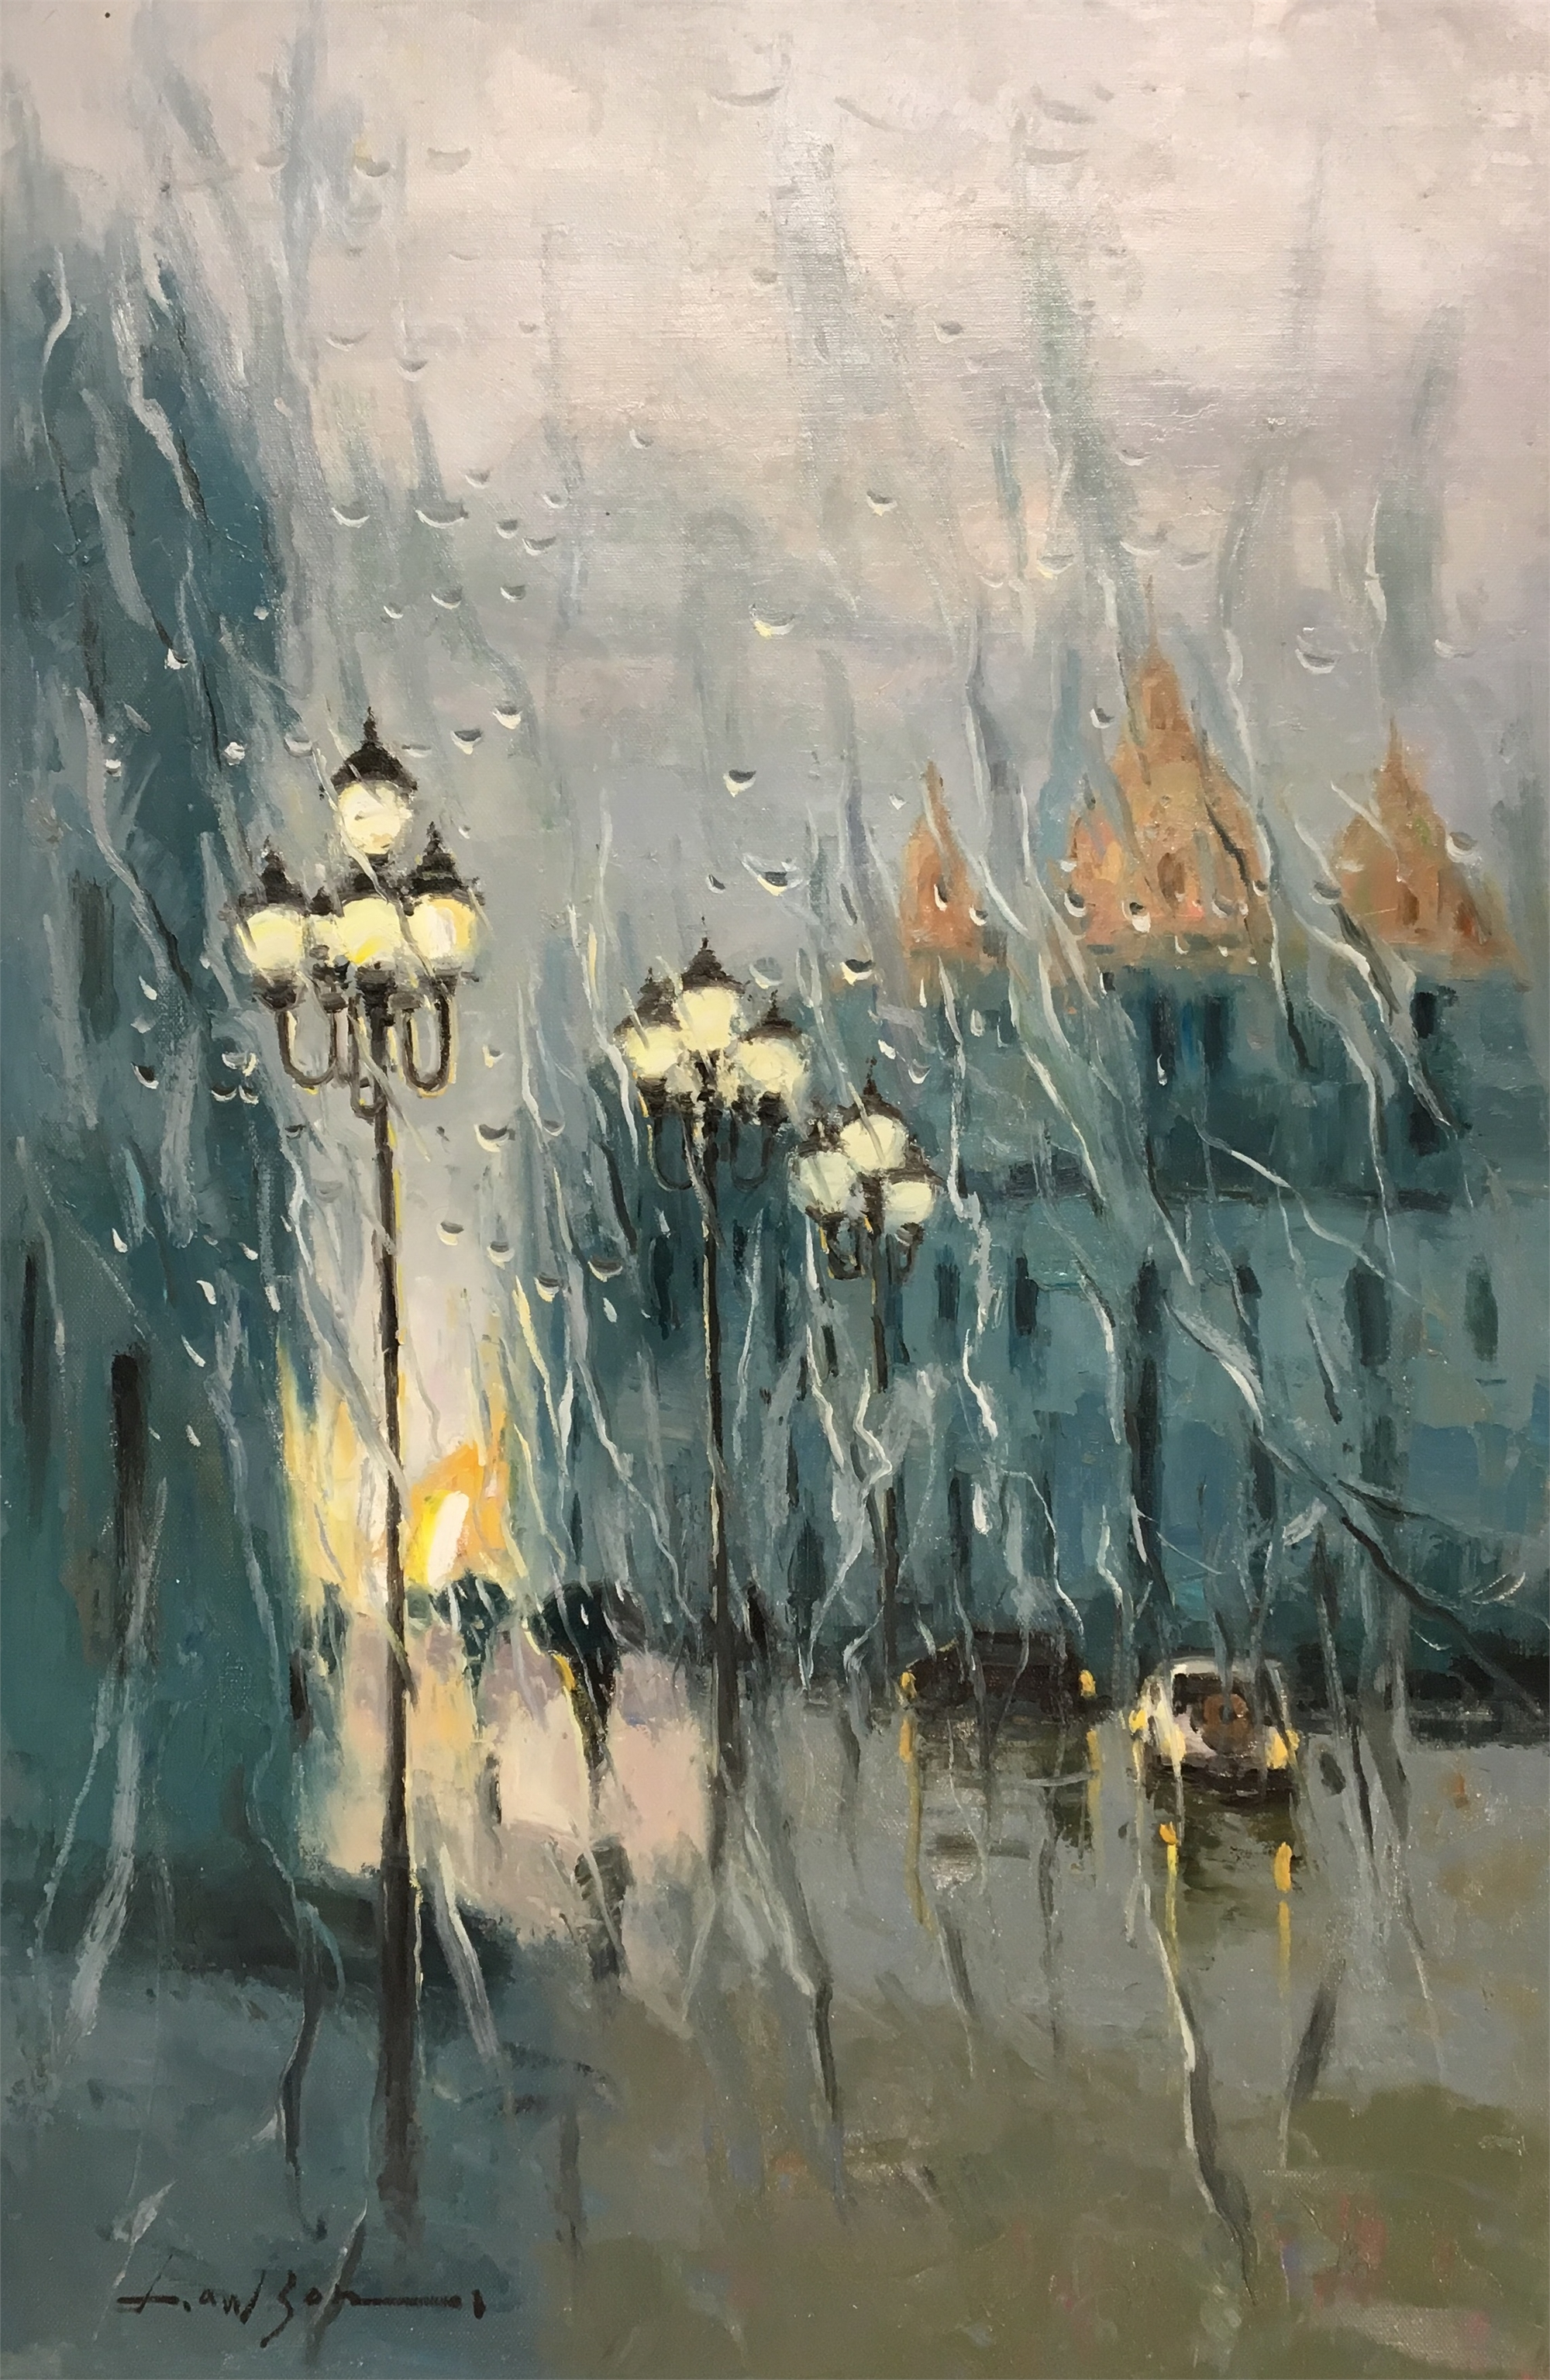 RAIN ON THE WINDOW STREETLAMPS by LAWSON